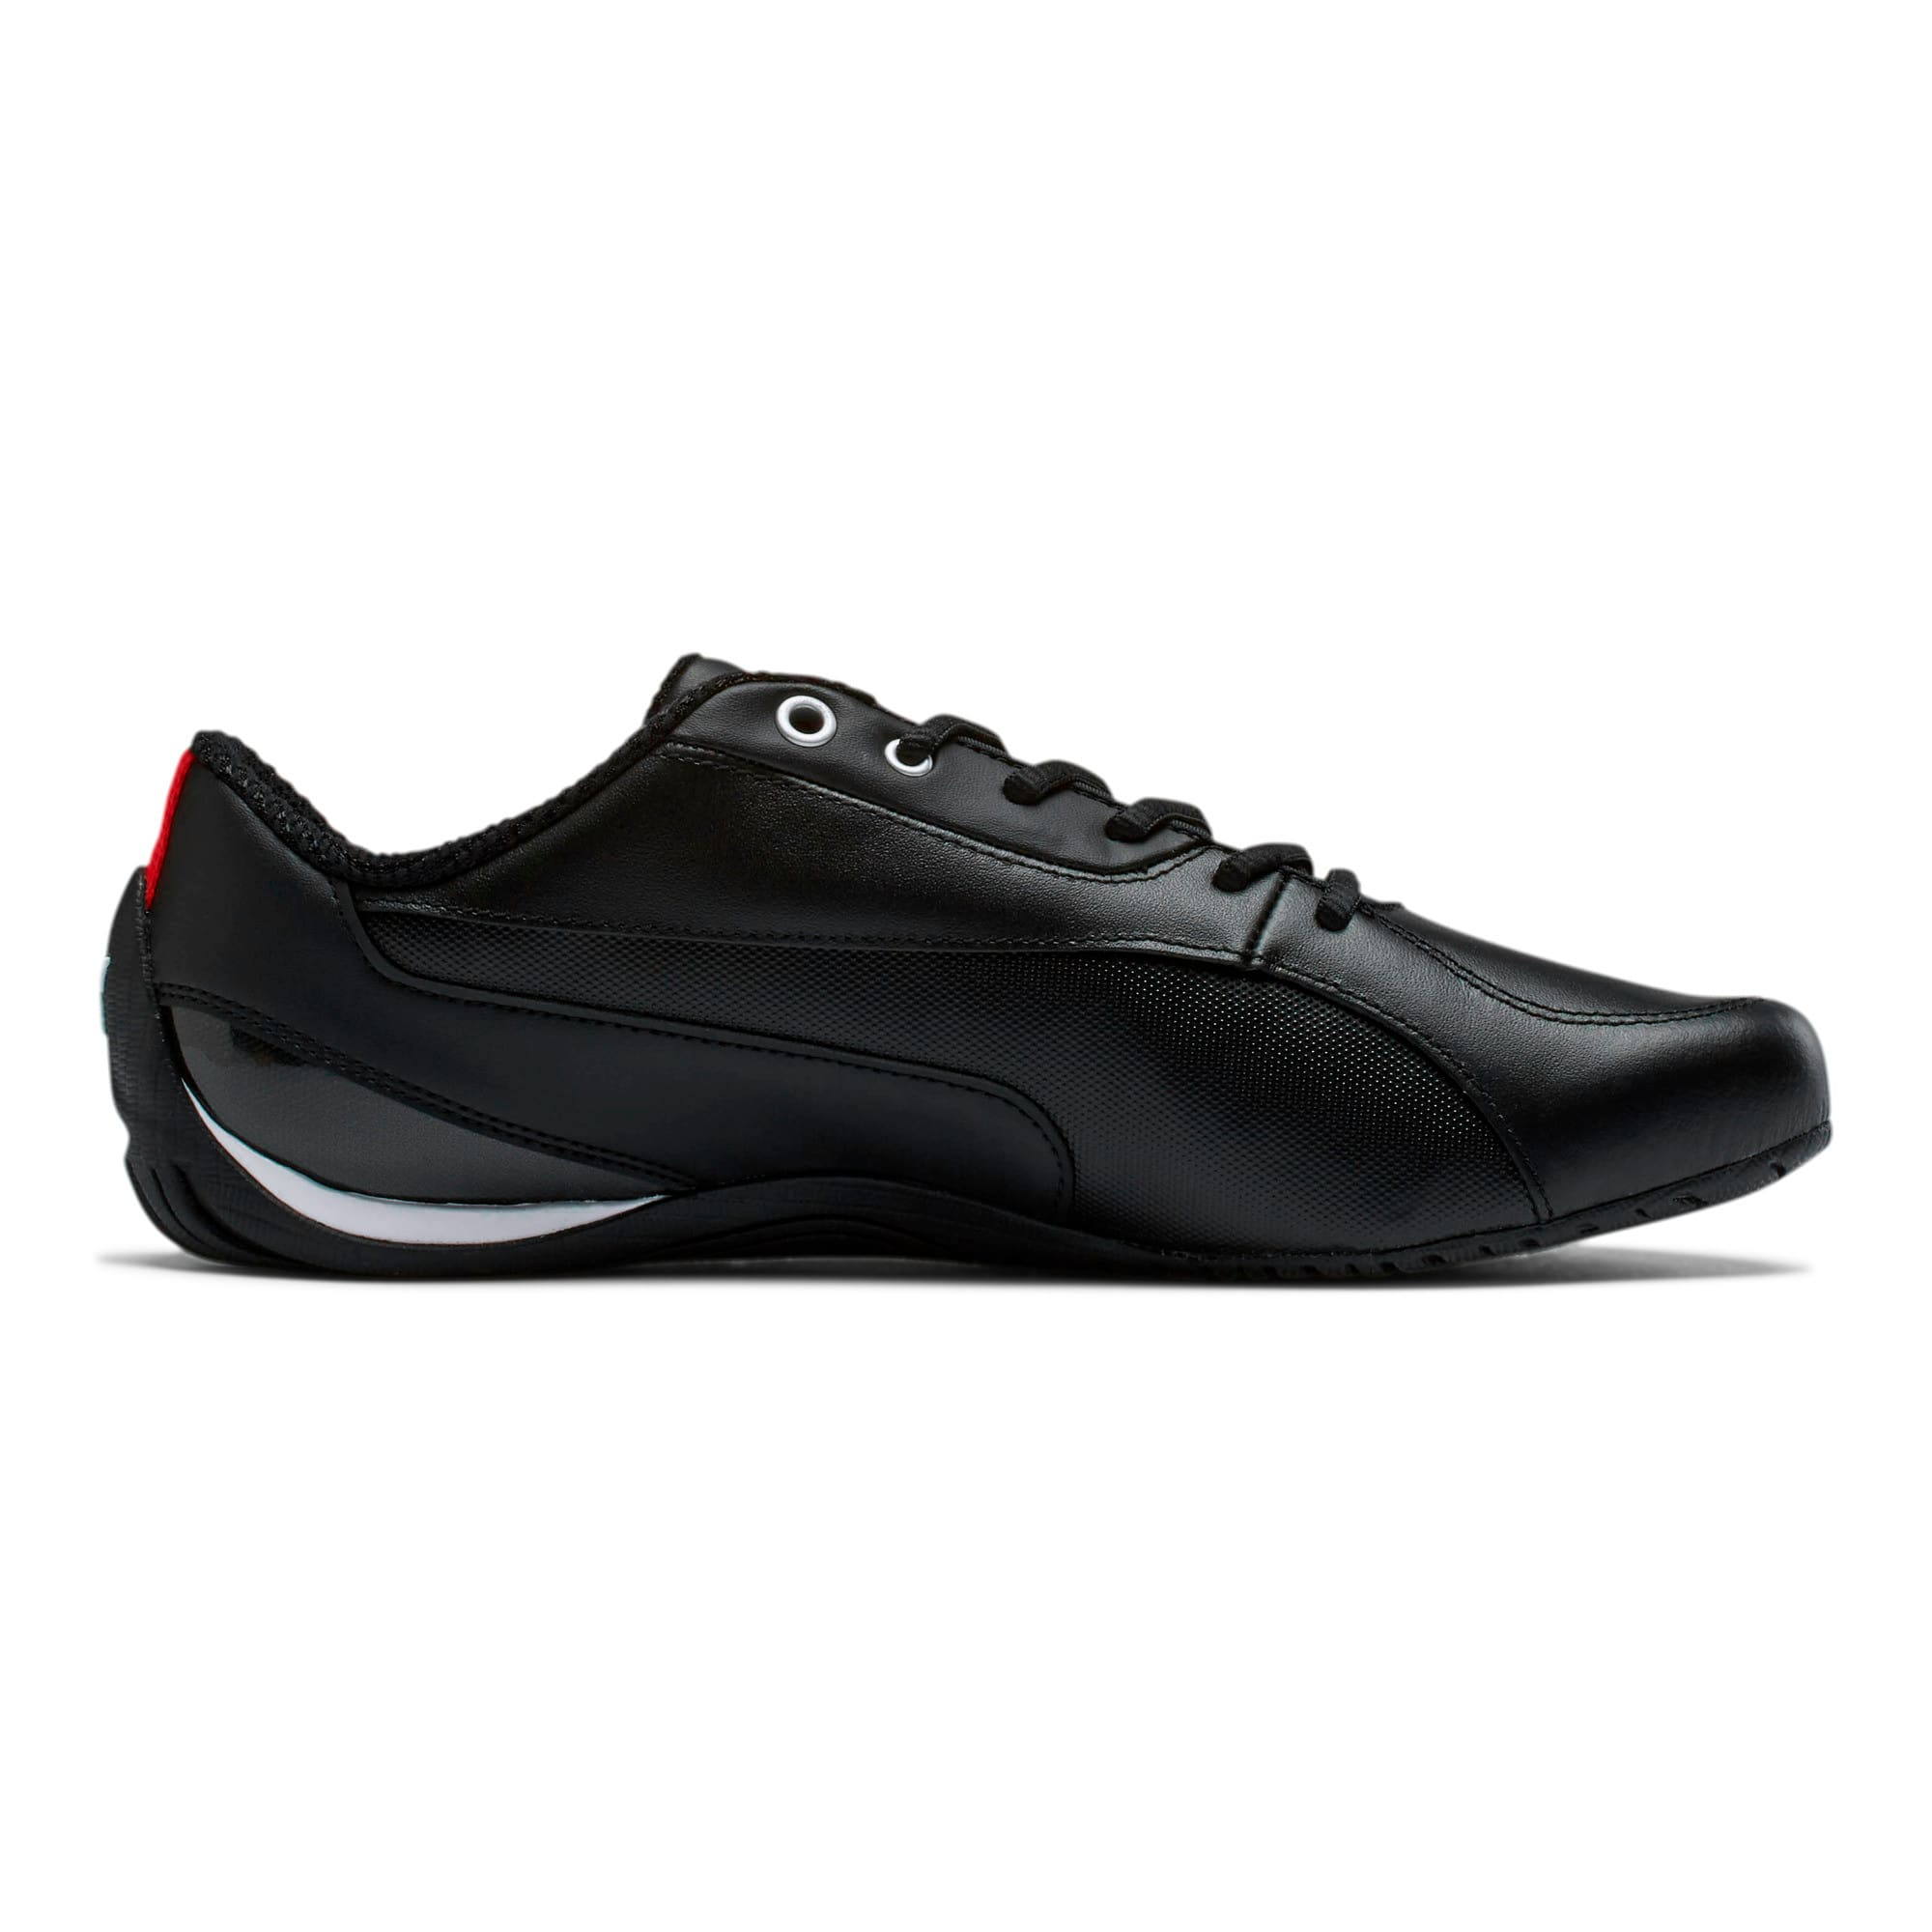 Thumbnail 5 of Scuderia Ferrari Drift Cat 5 NM Men's Shoes, Puma Black-Puma Black, medium